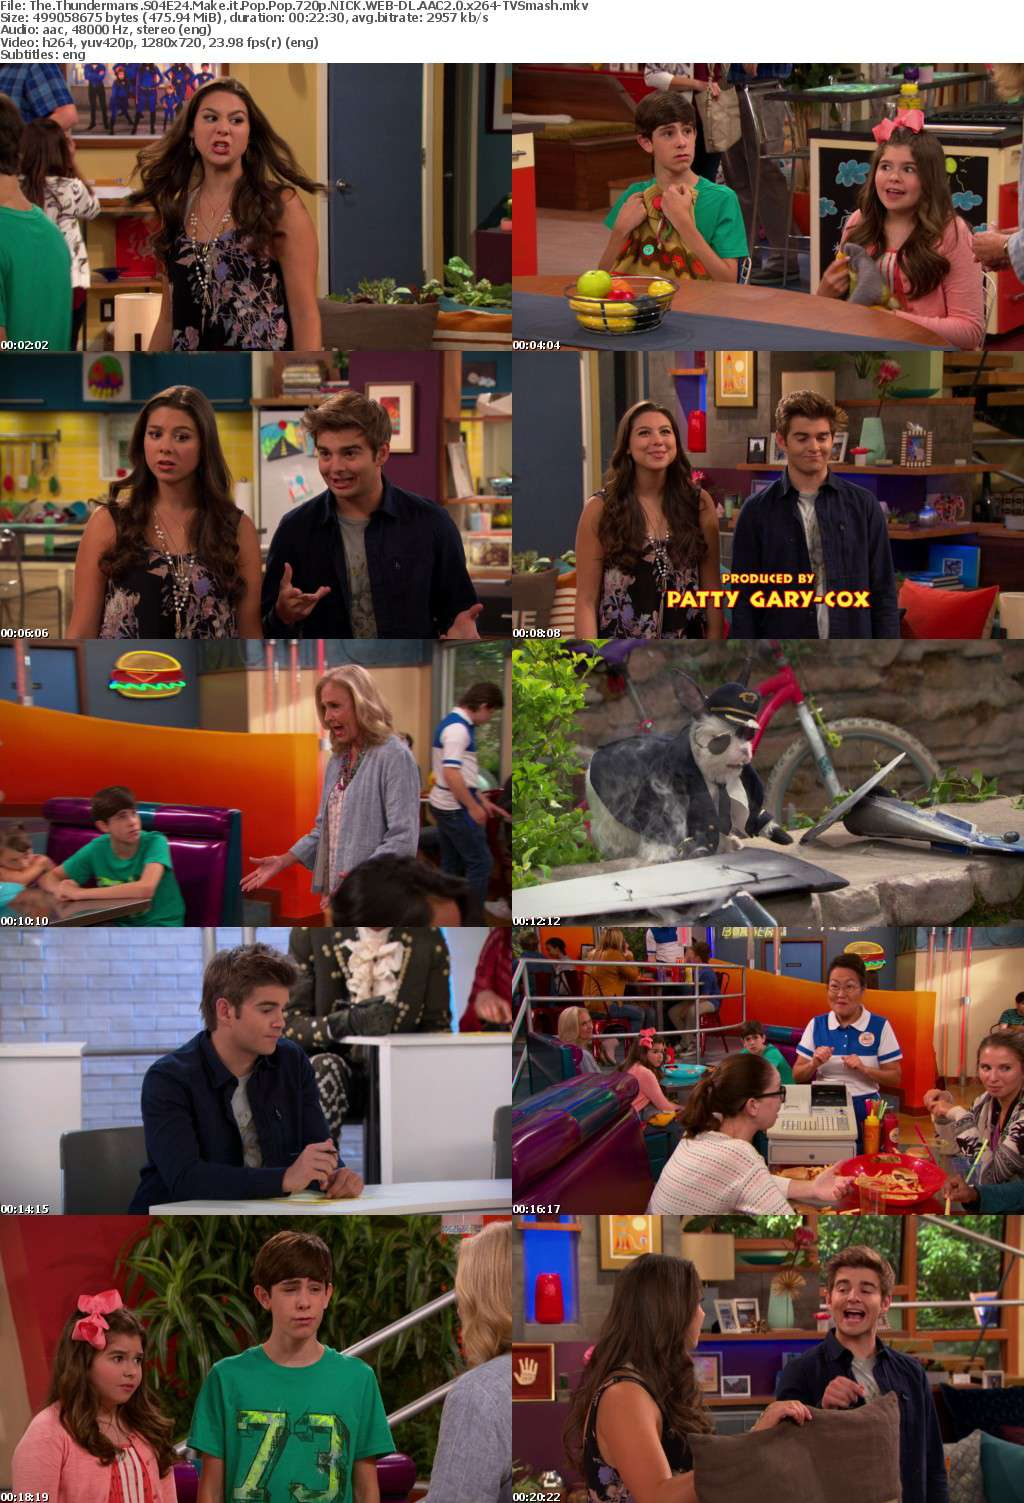 The Thundermans S04E24 Make it Pop Pop 720p NICK WEB-DL AAC2 0 x264-TVSmash